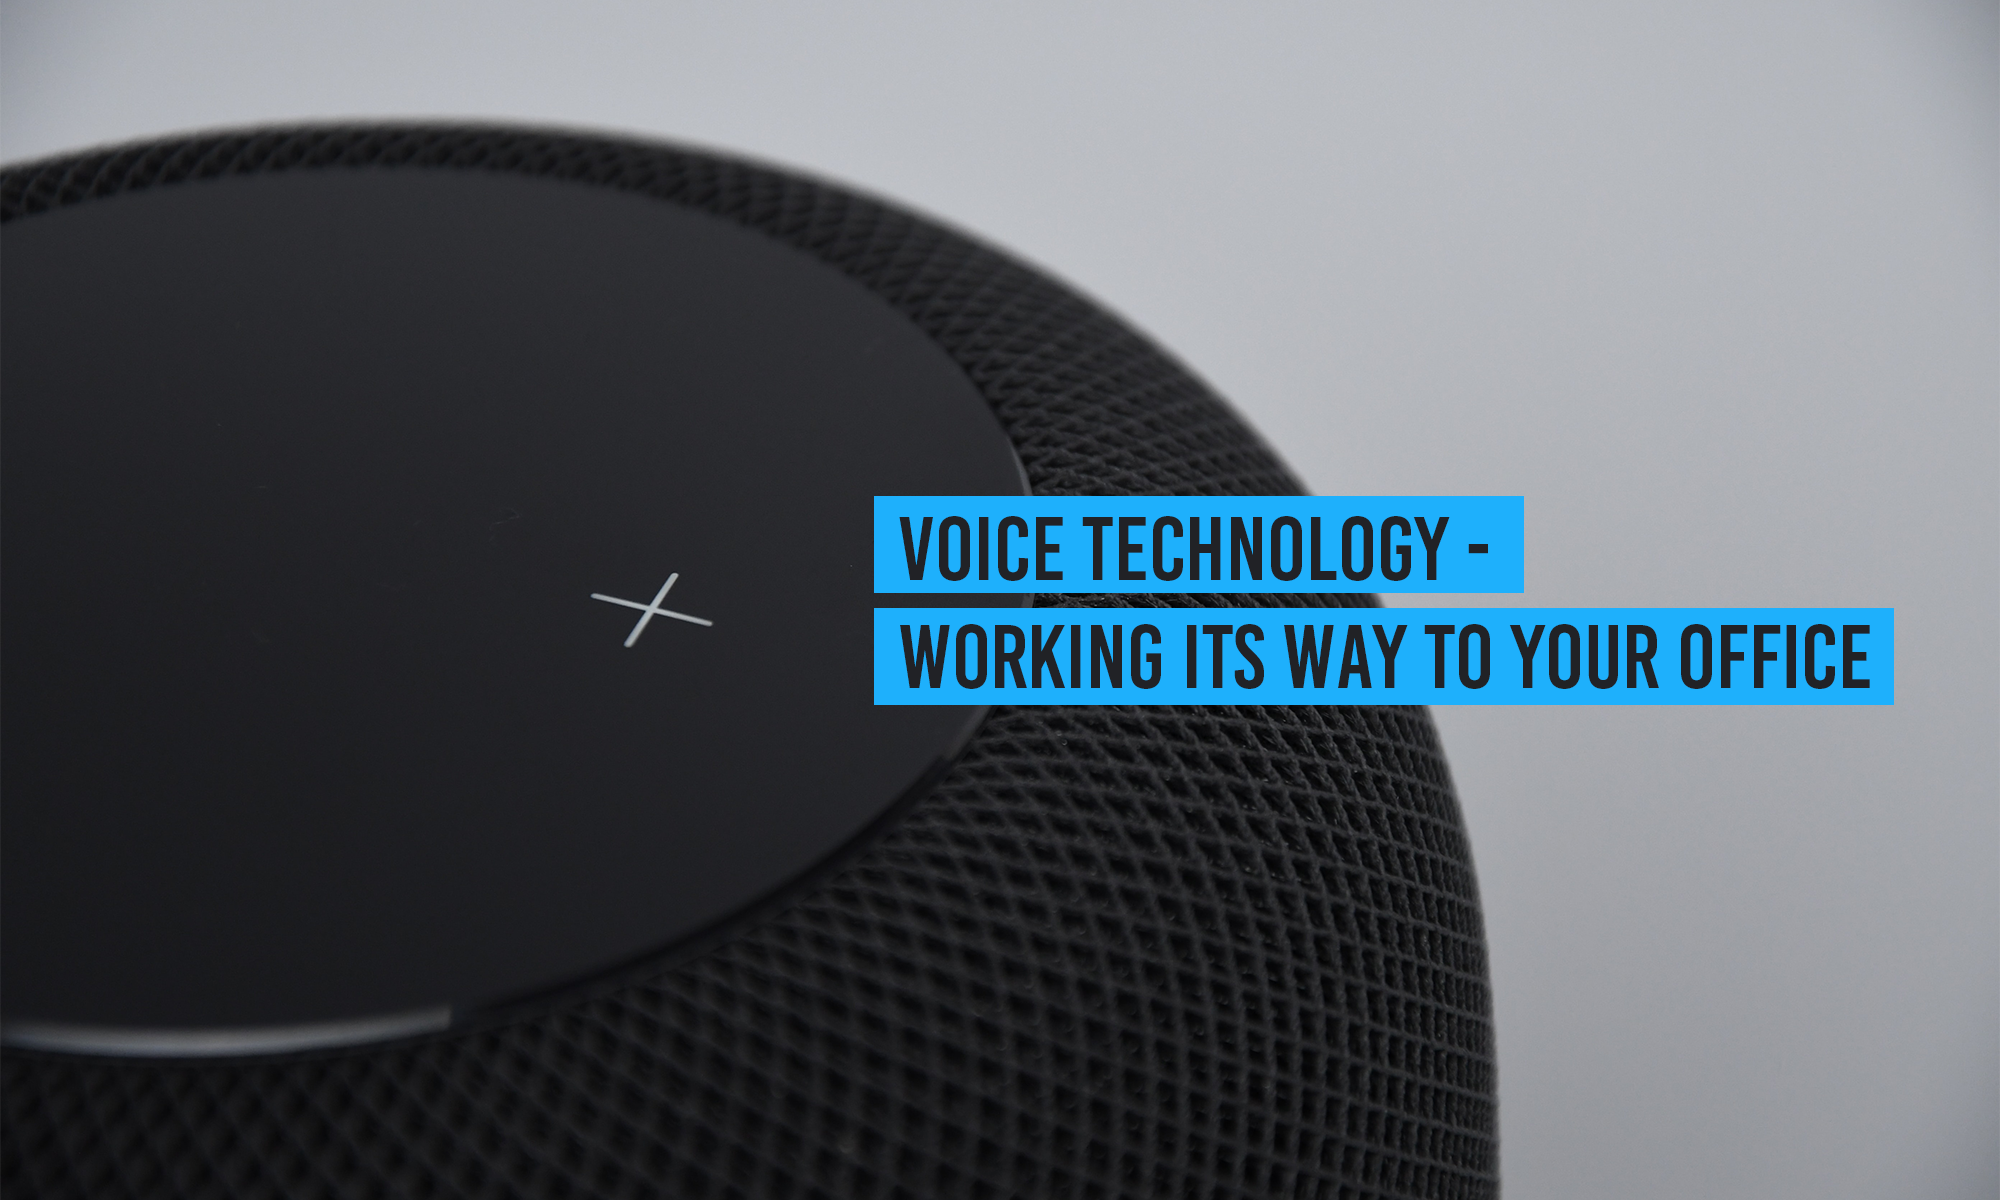 Voice Technology – Working Its Way To Your Office